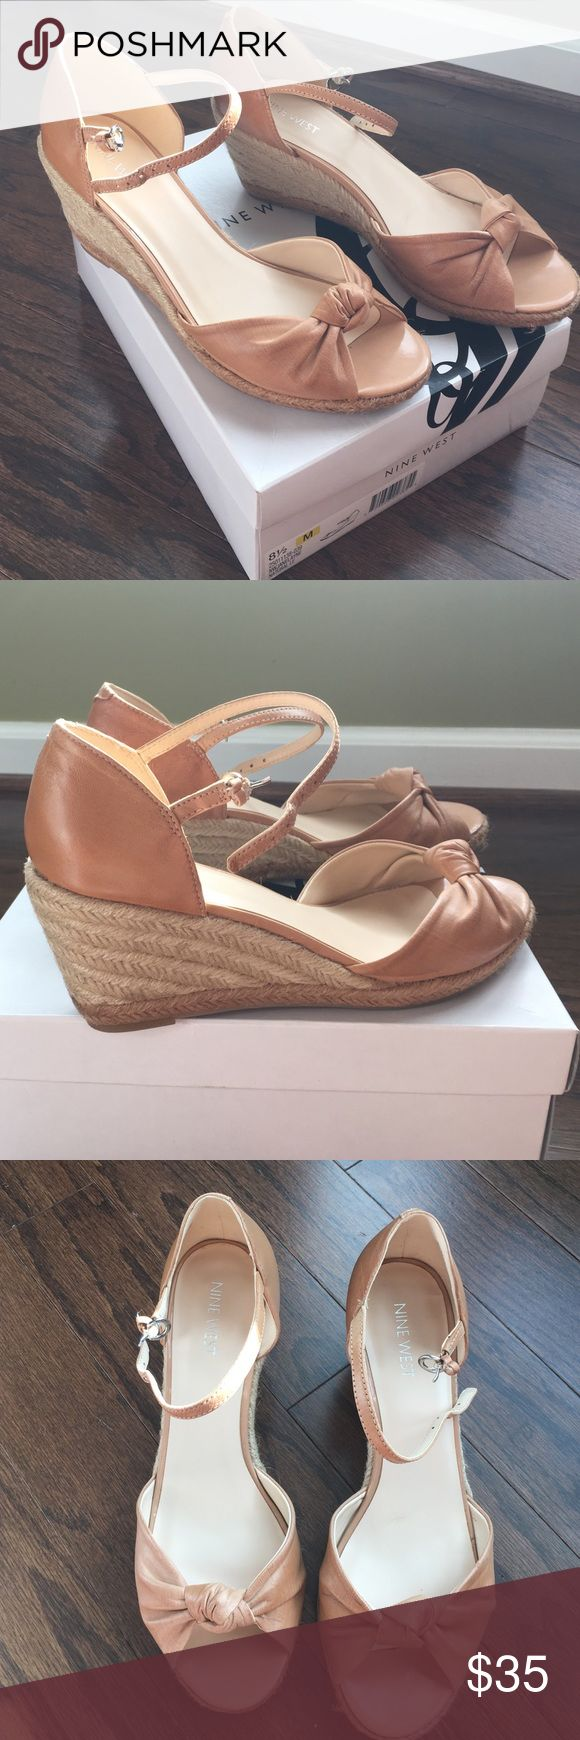 Nine West Jane Layne Wedge Natural LE color neutral wedge espadrilles. Perfect with pants, skirts, and dresses! Nine West Shoes Espadrilles